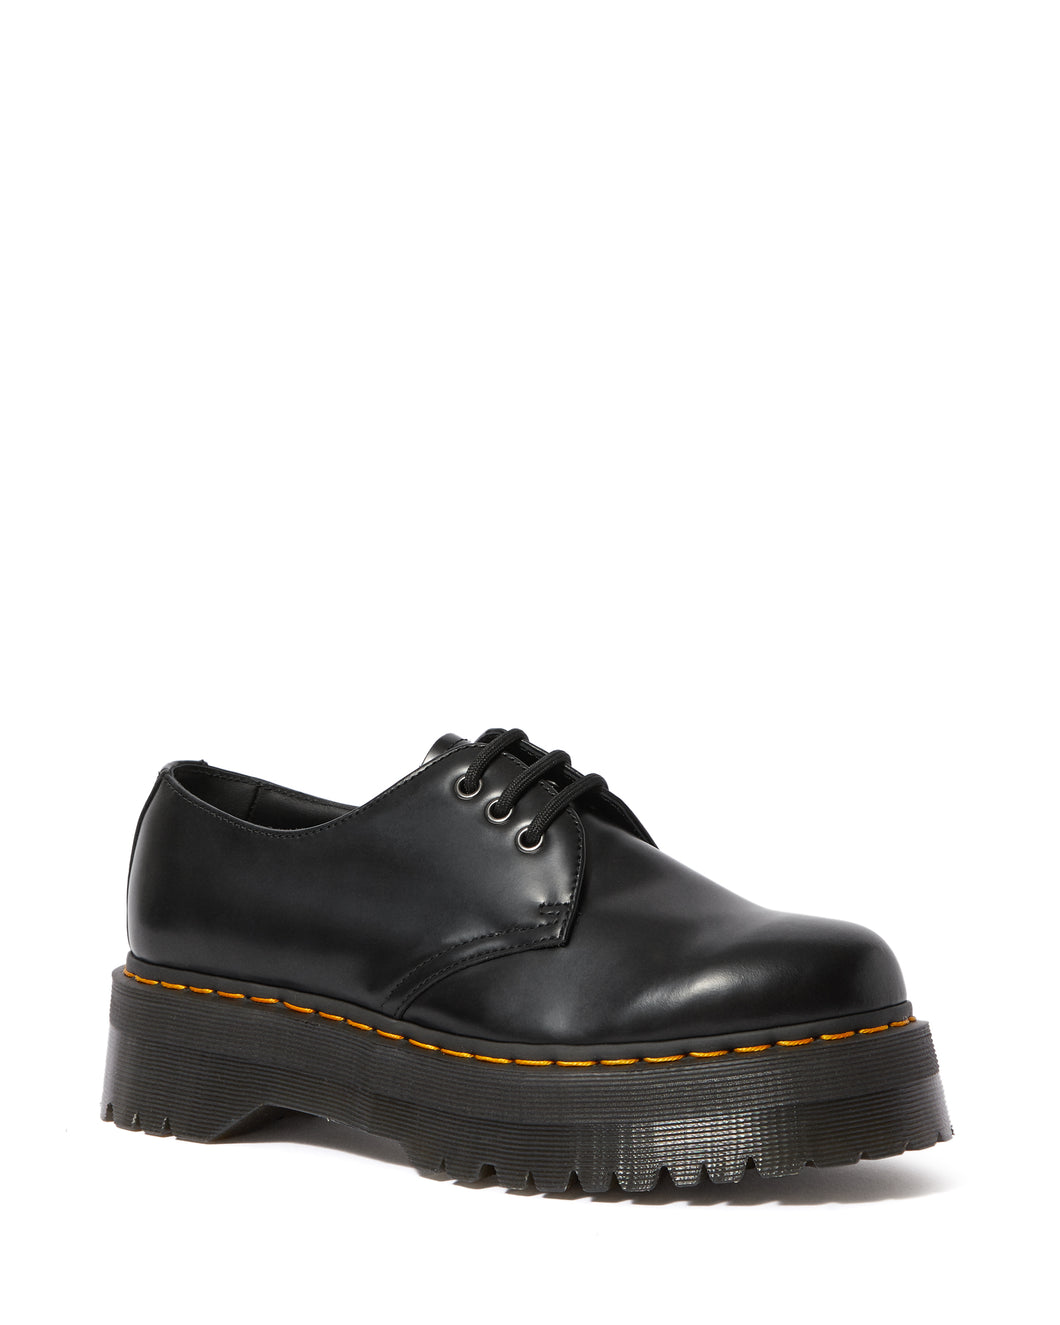 1461 Smooth Leather Platform